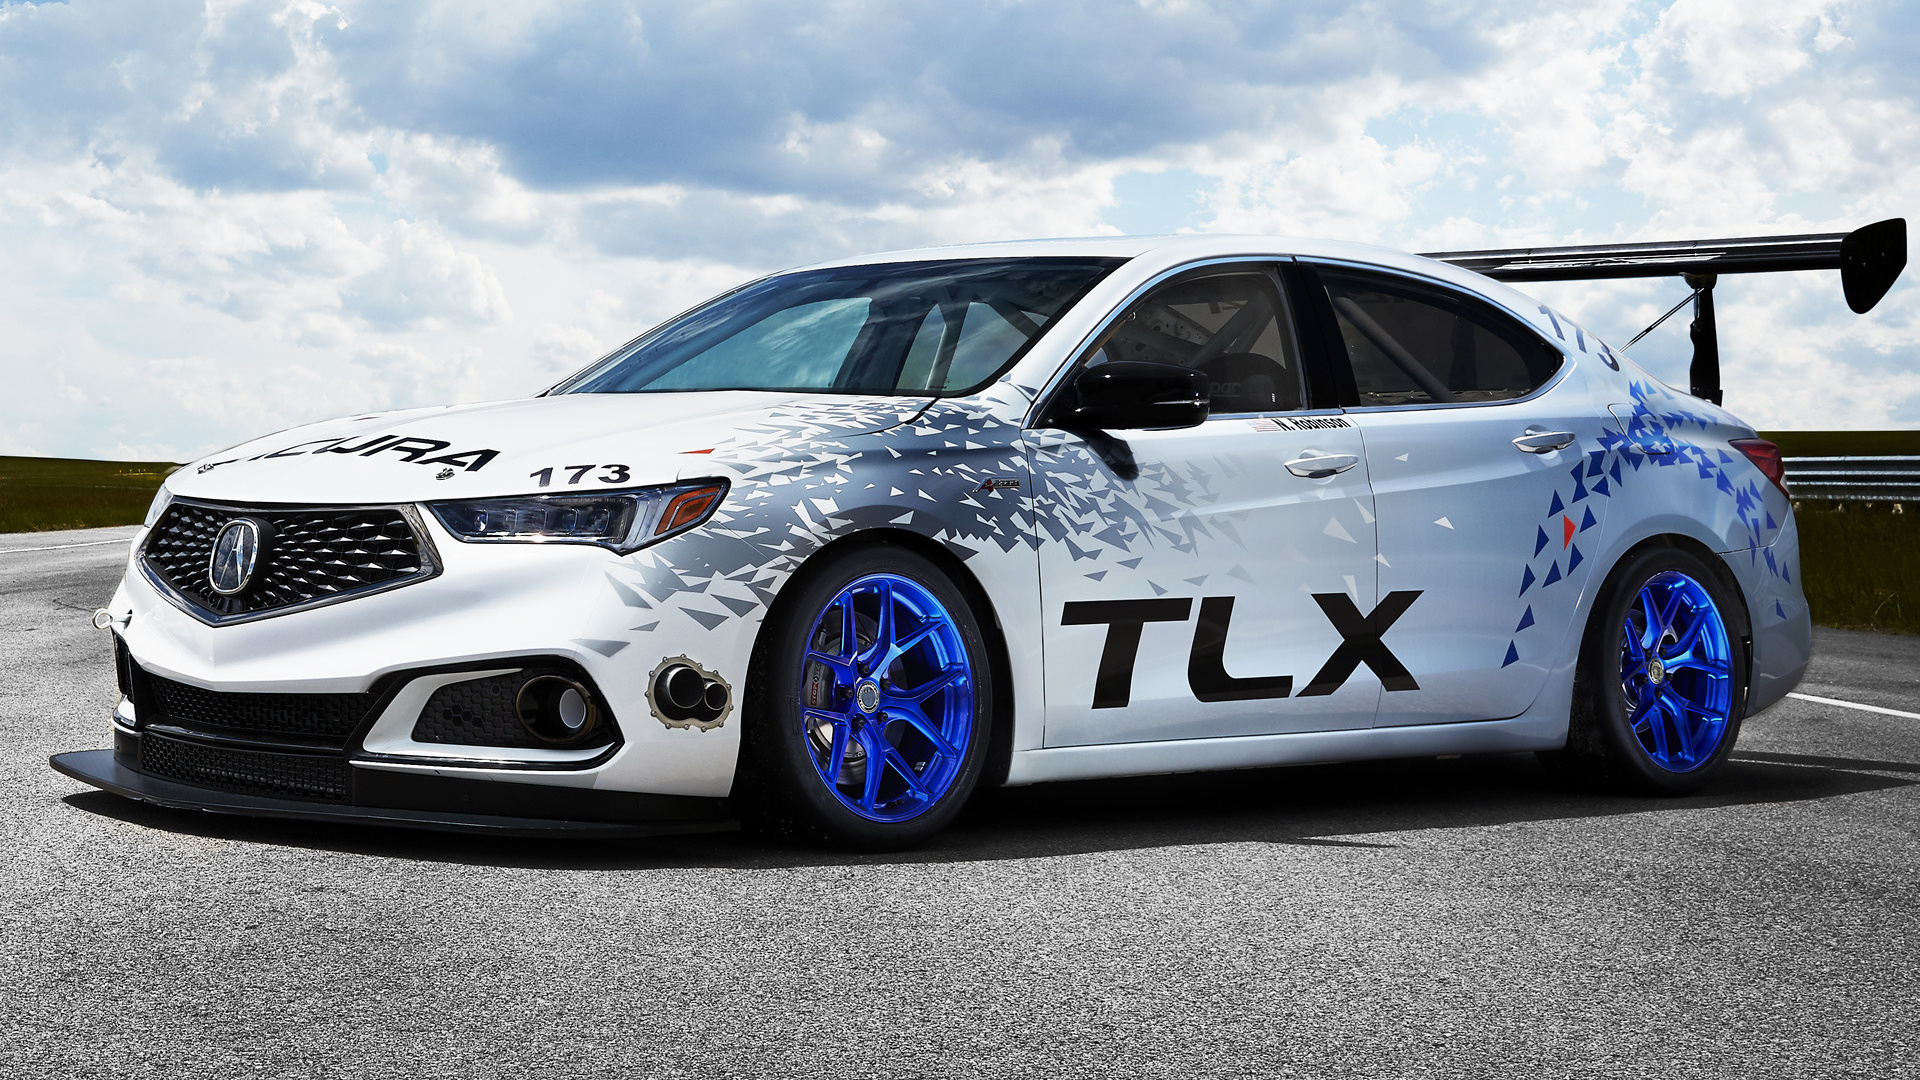 acura tlx a spec race car 2017 wallpapers and hd images car pixel. Black Bedroom Furniture Sets. Home Design Ideas